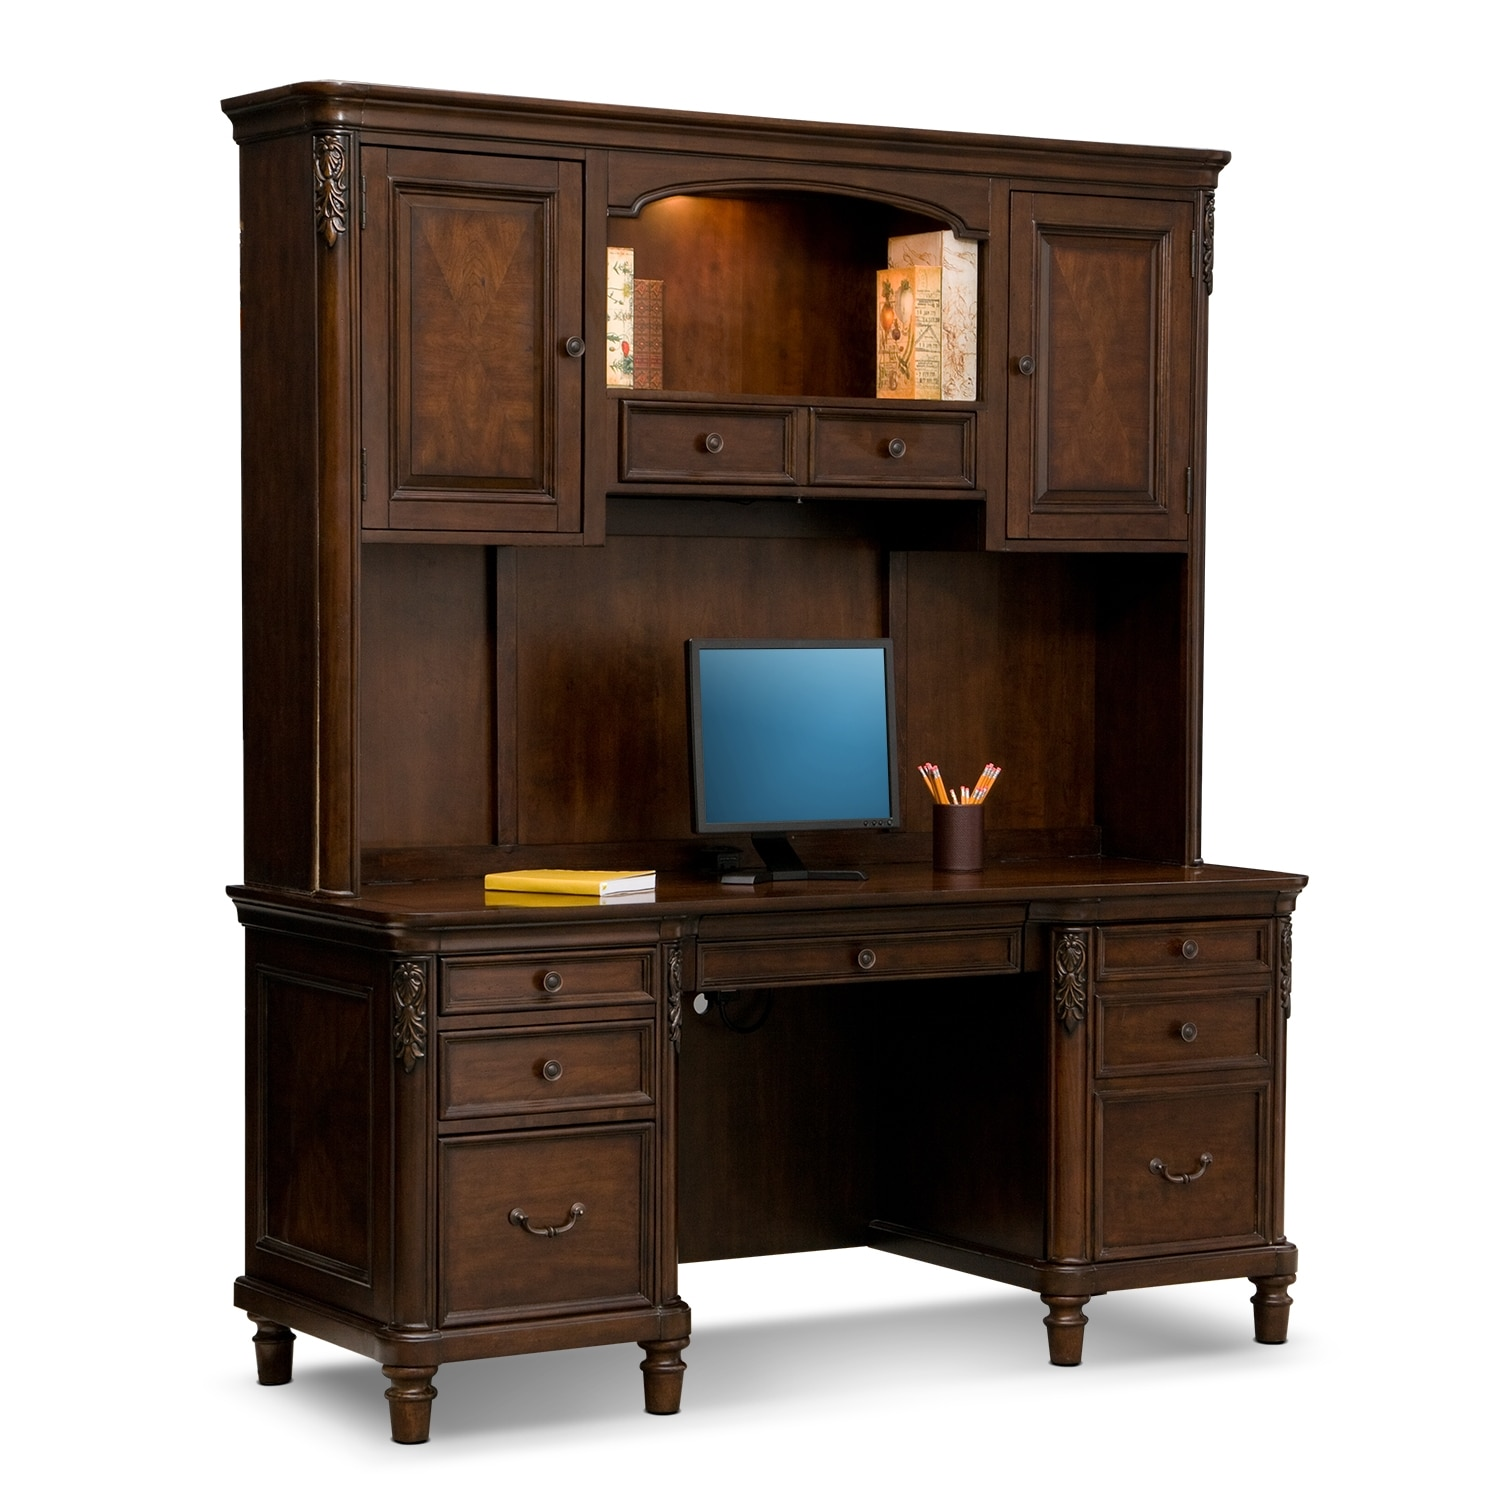 Home Office Furniture - Ashland Credenza Desk with Hutch